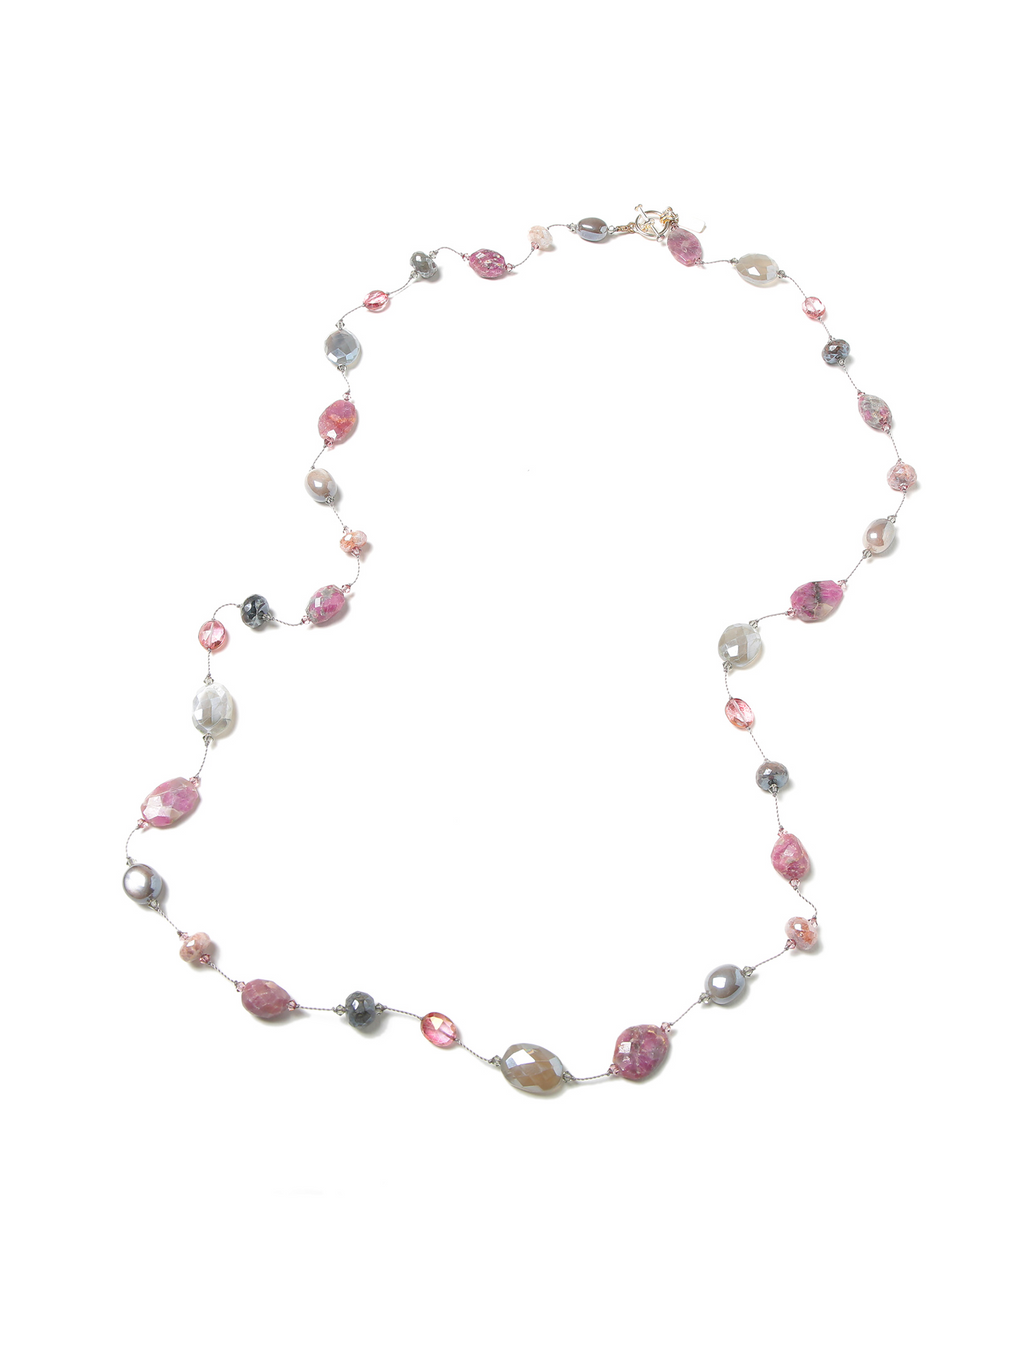 Margo Morrison Raw Ruby, Grey Moonstone & Pink Quartz Necklace 35""